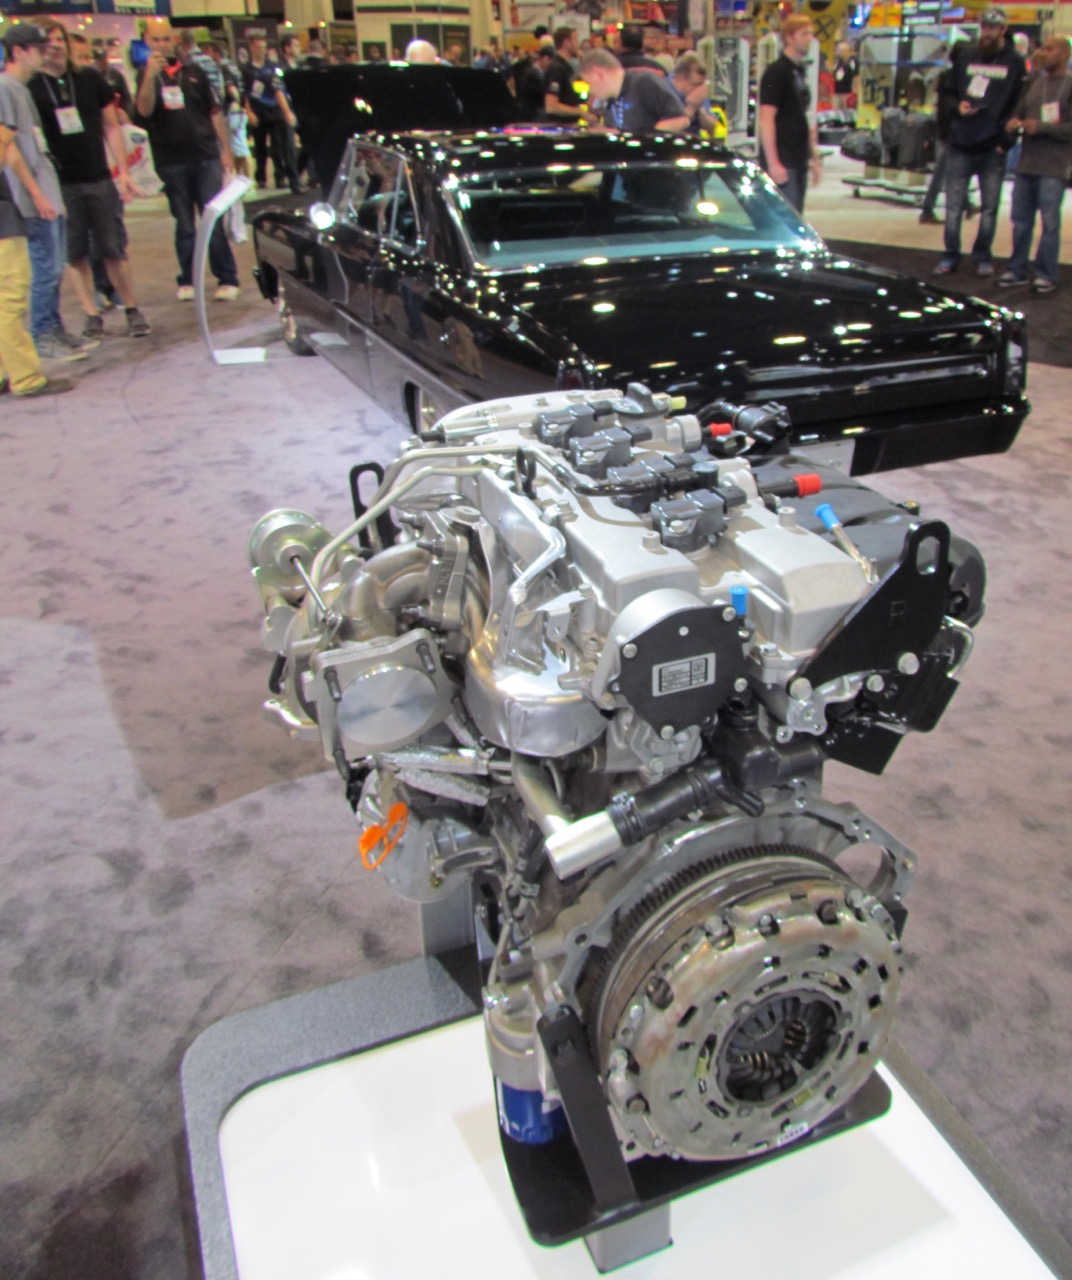 The engine and the car